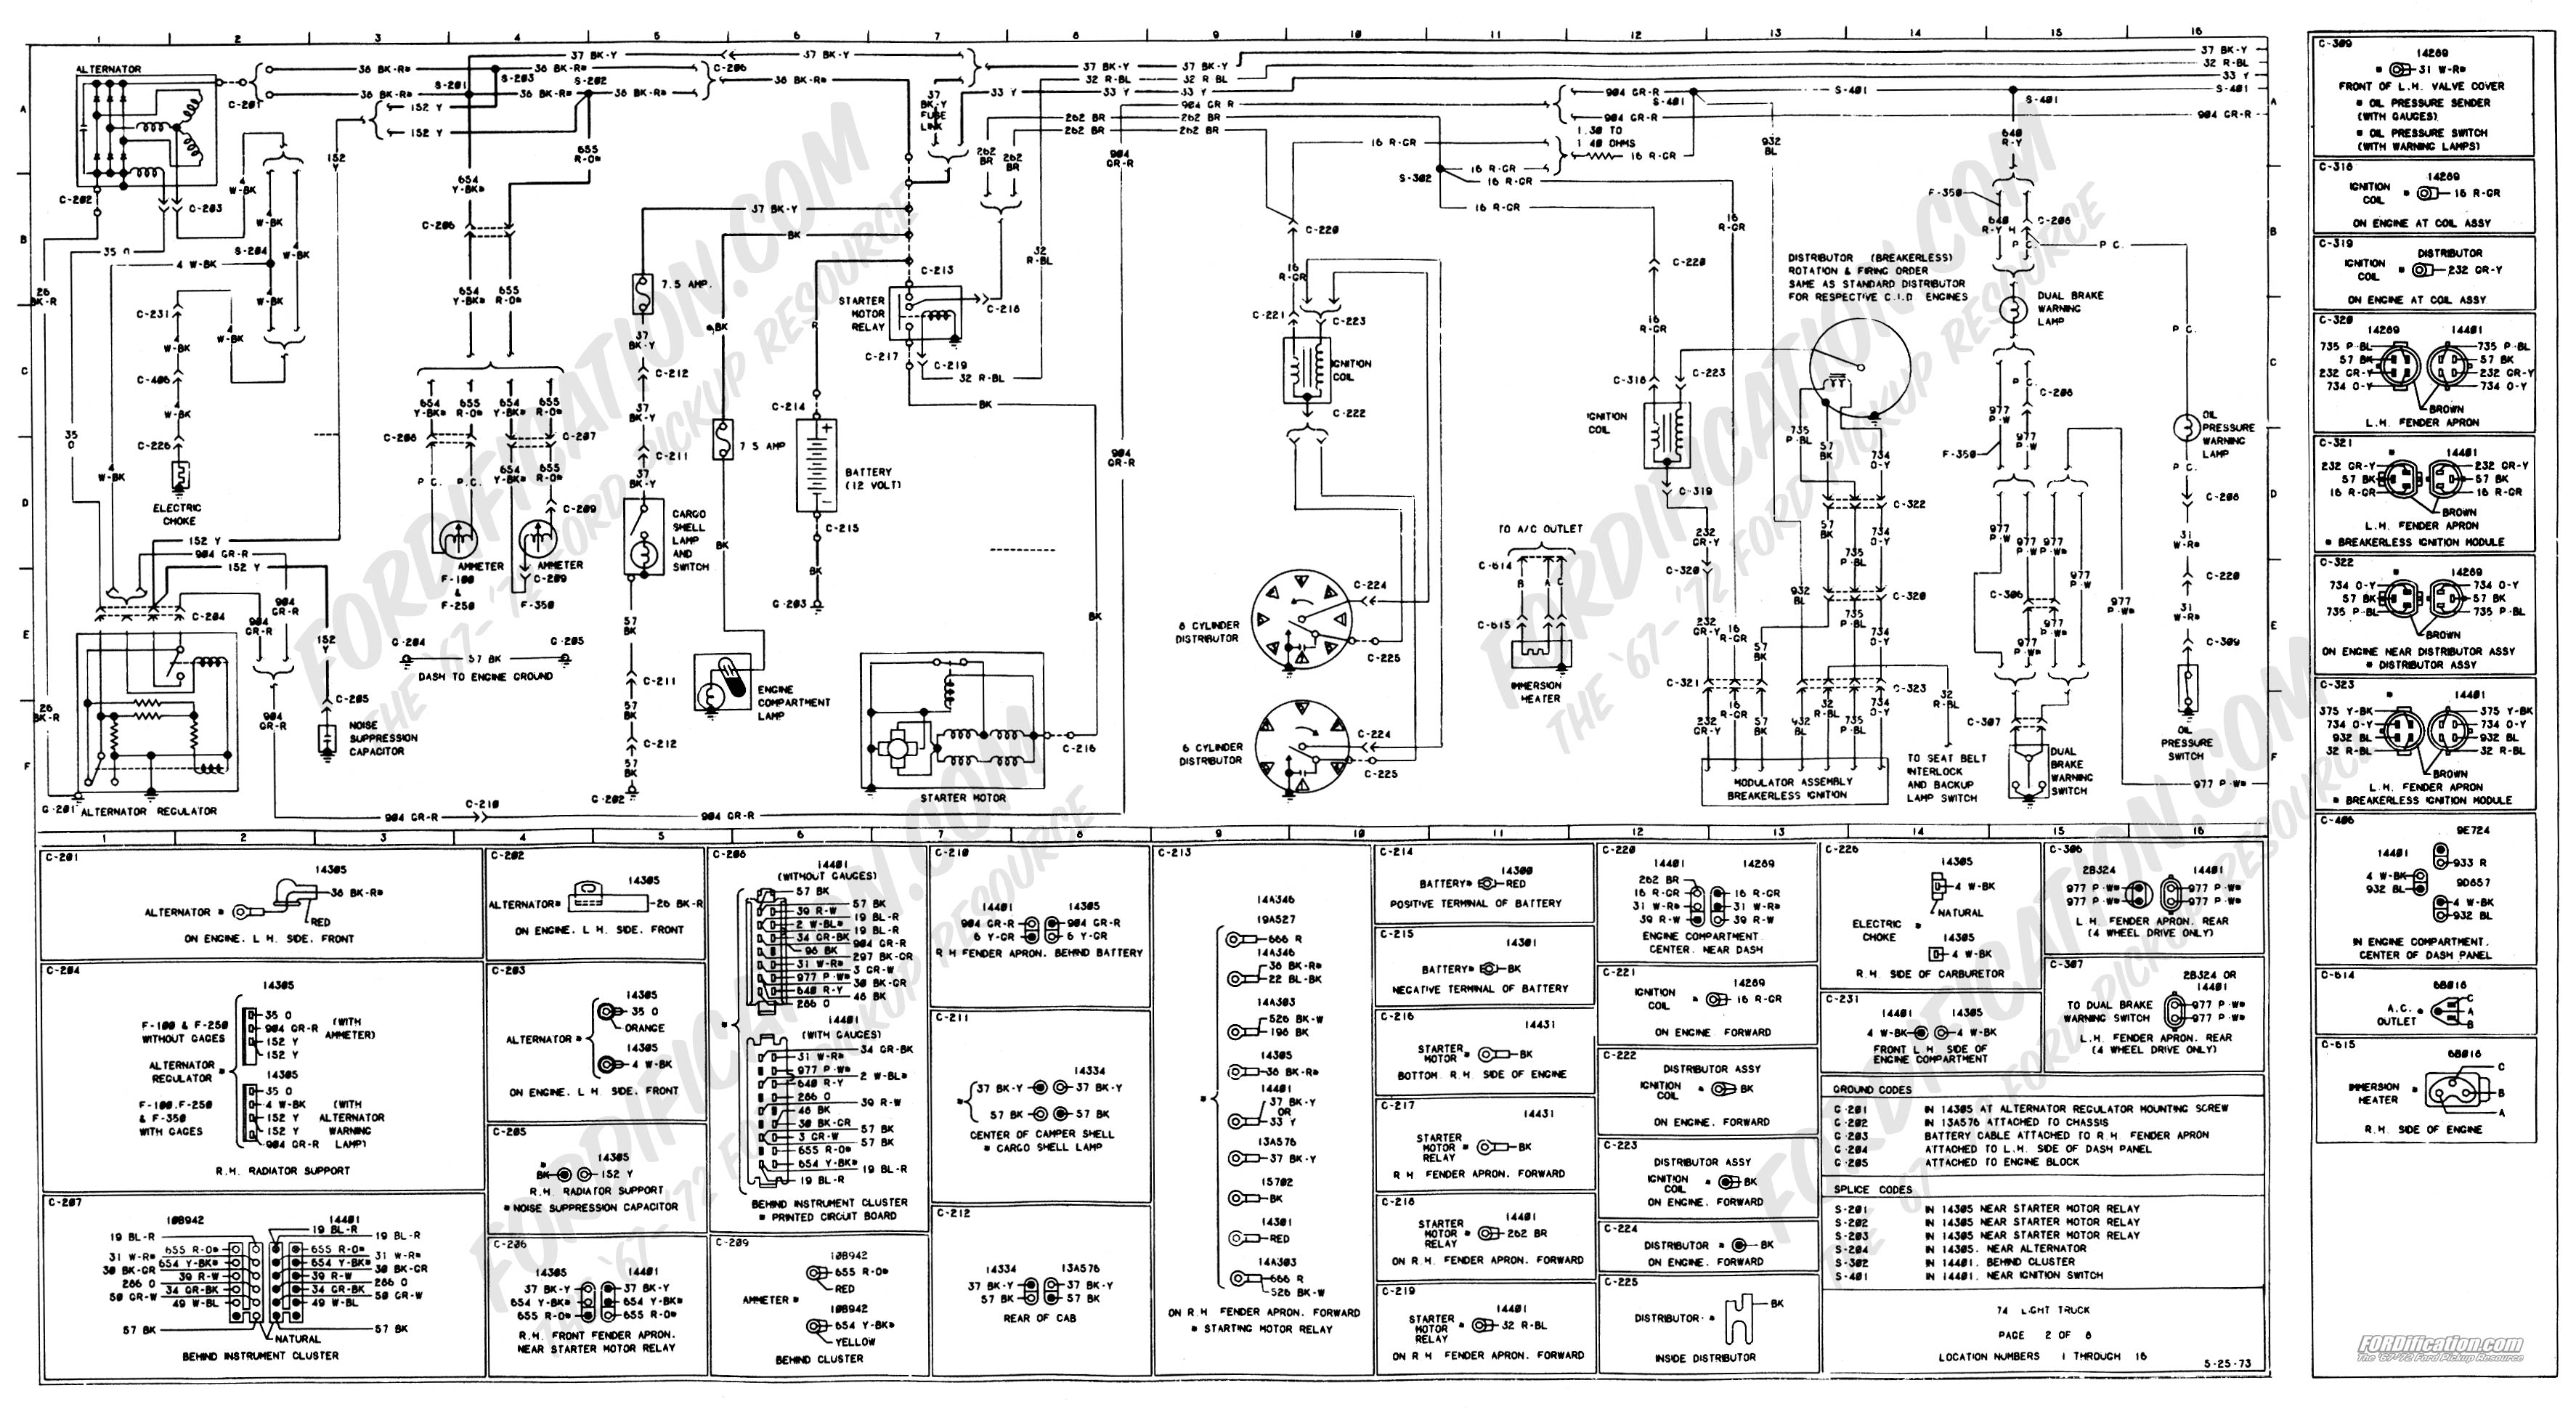 1987 Ford E250 Wiring Diagram Library 1973 1979 Truck Diagrams Schematics Fordification Net Rh F250 Trailer